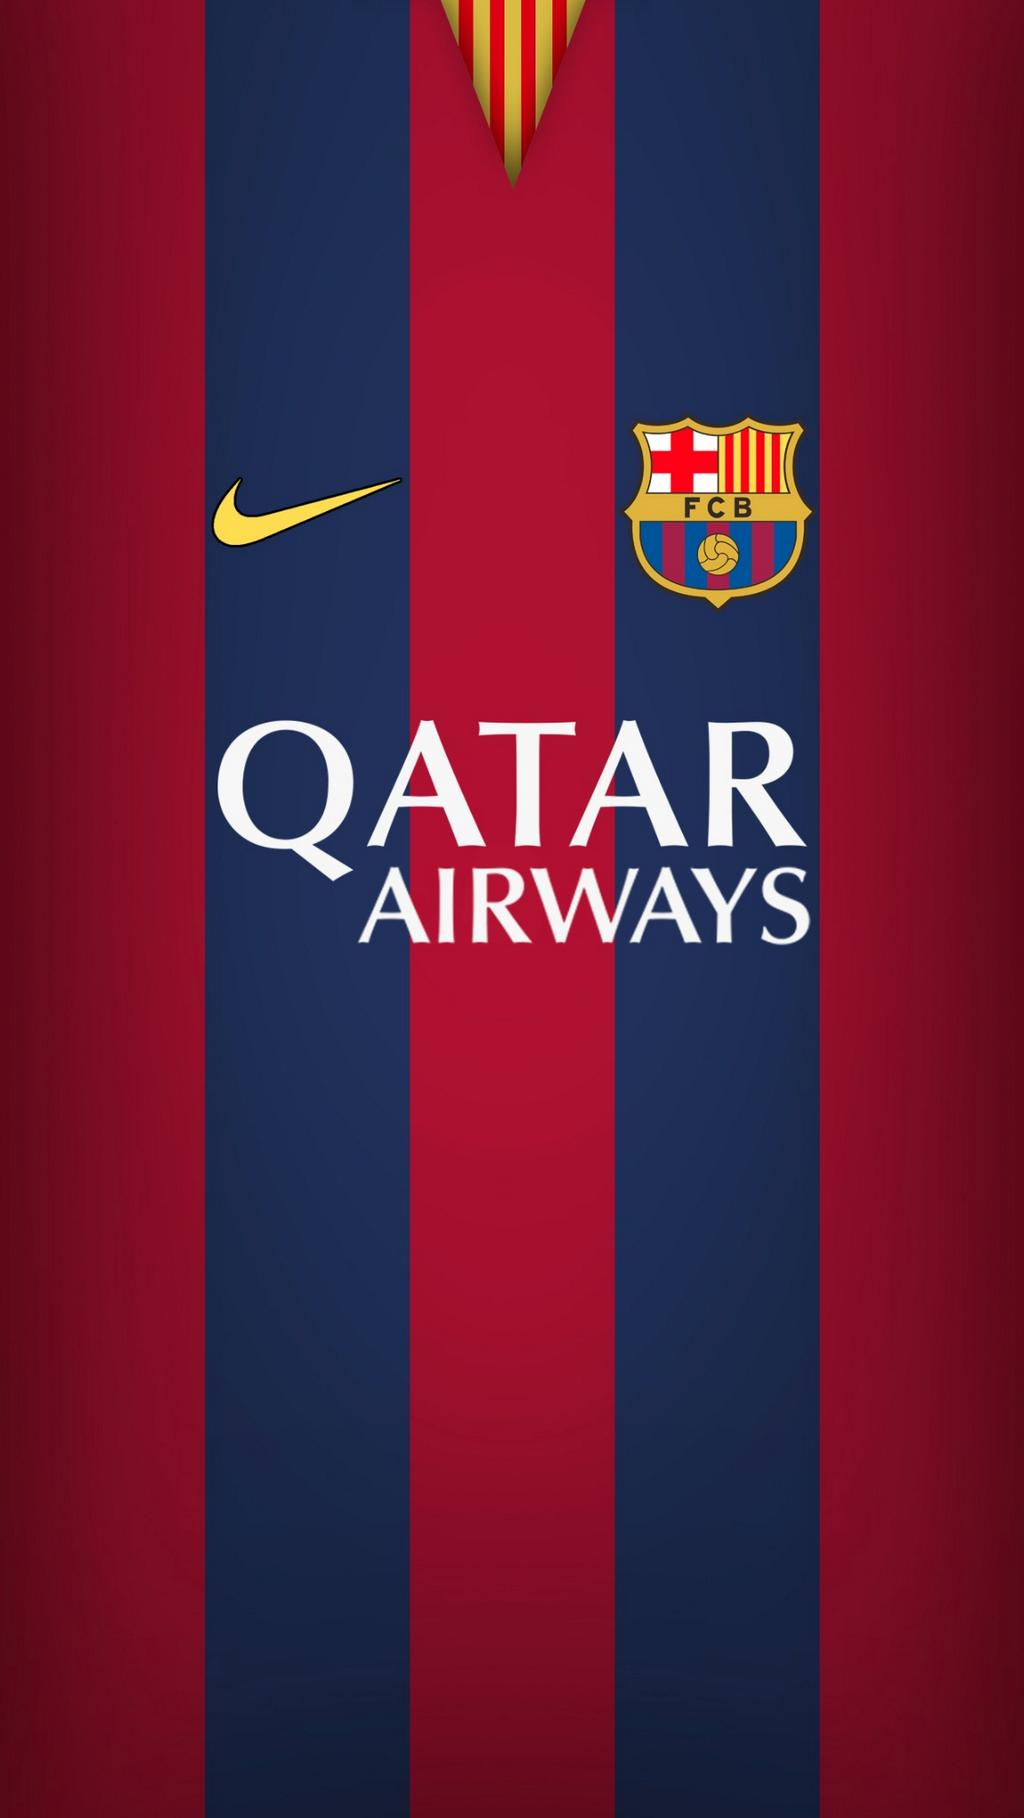 50 Fc Barcelona Wallpaper Phone On Wallpapersafari